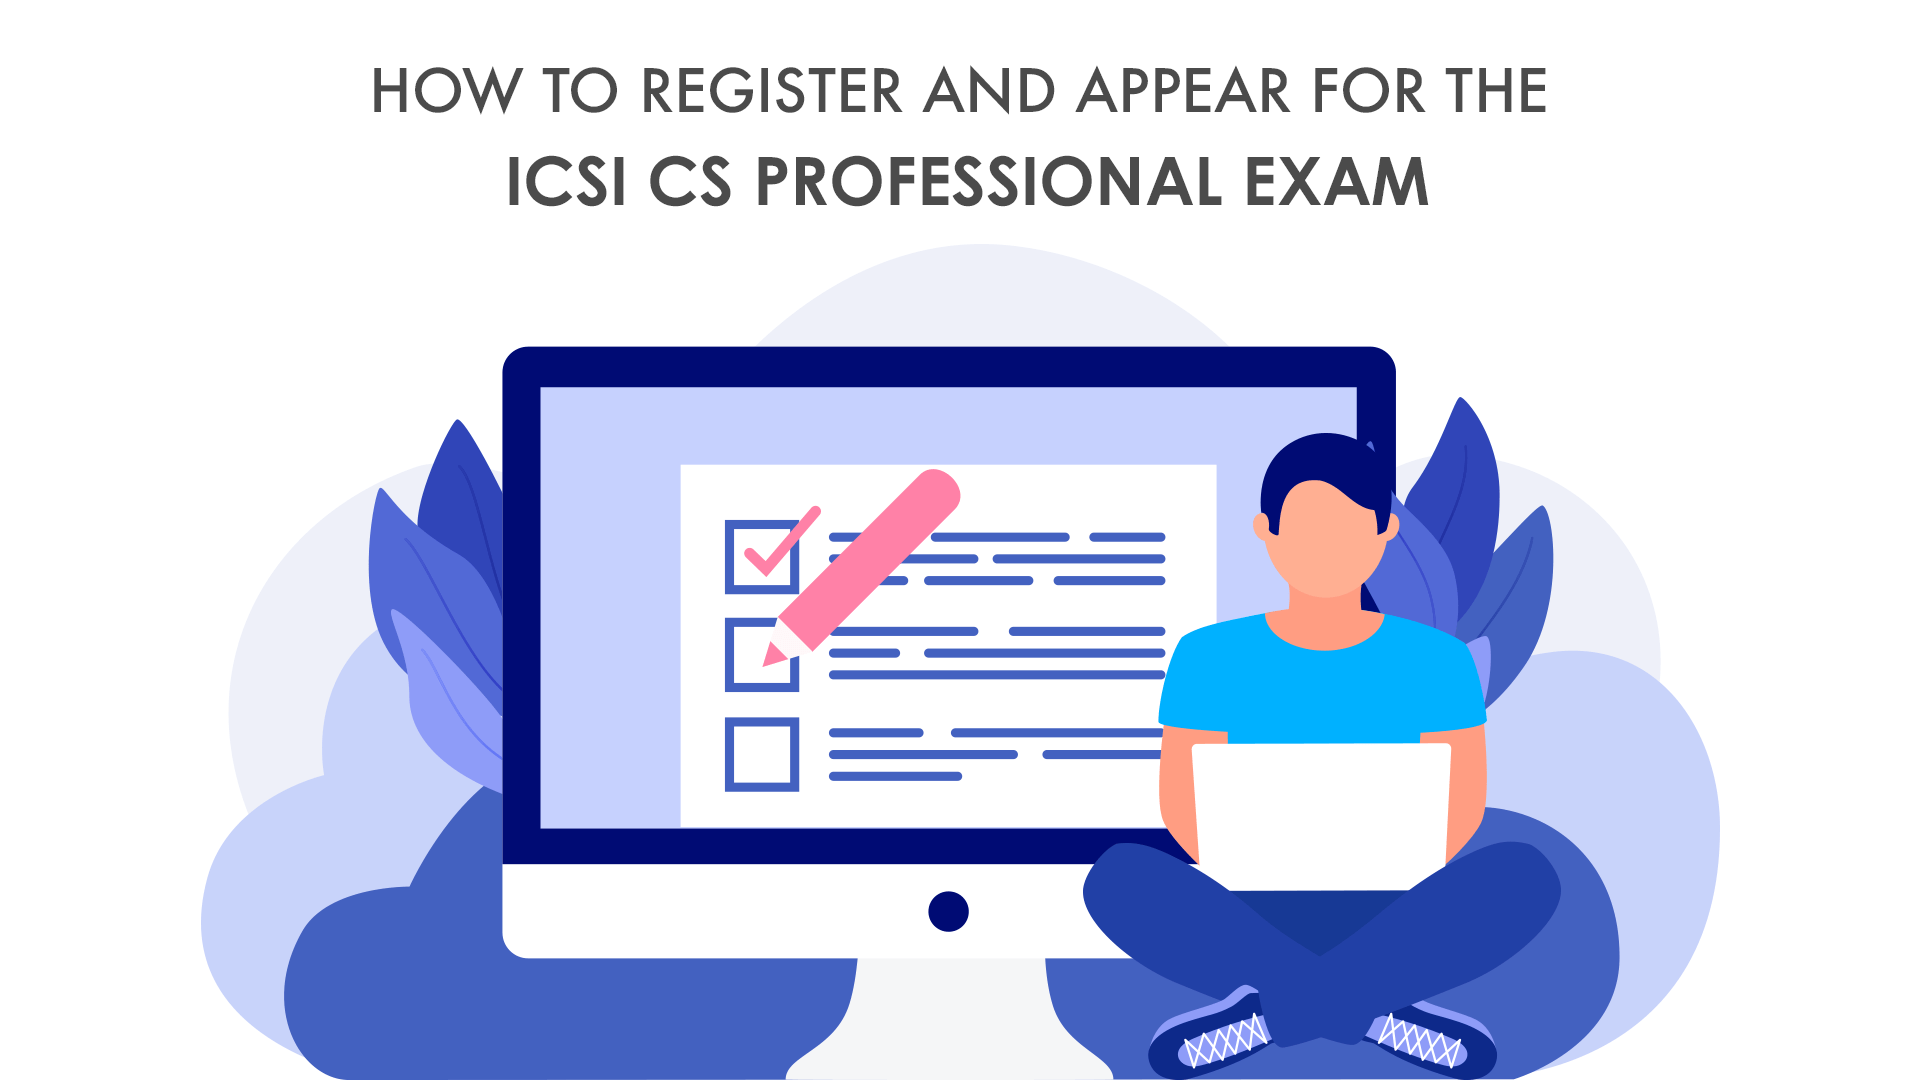 How to Register and Appear for The ICSI CS Professional Exam